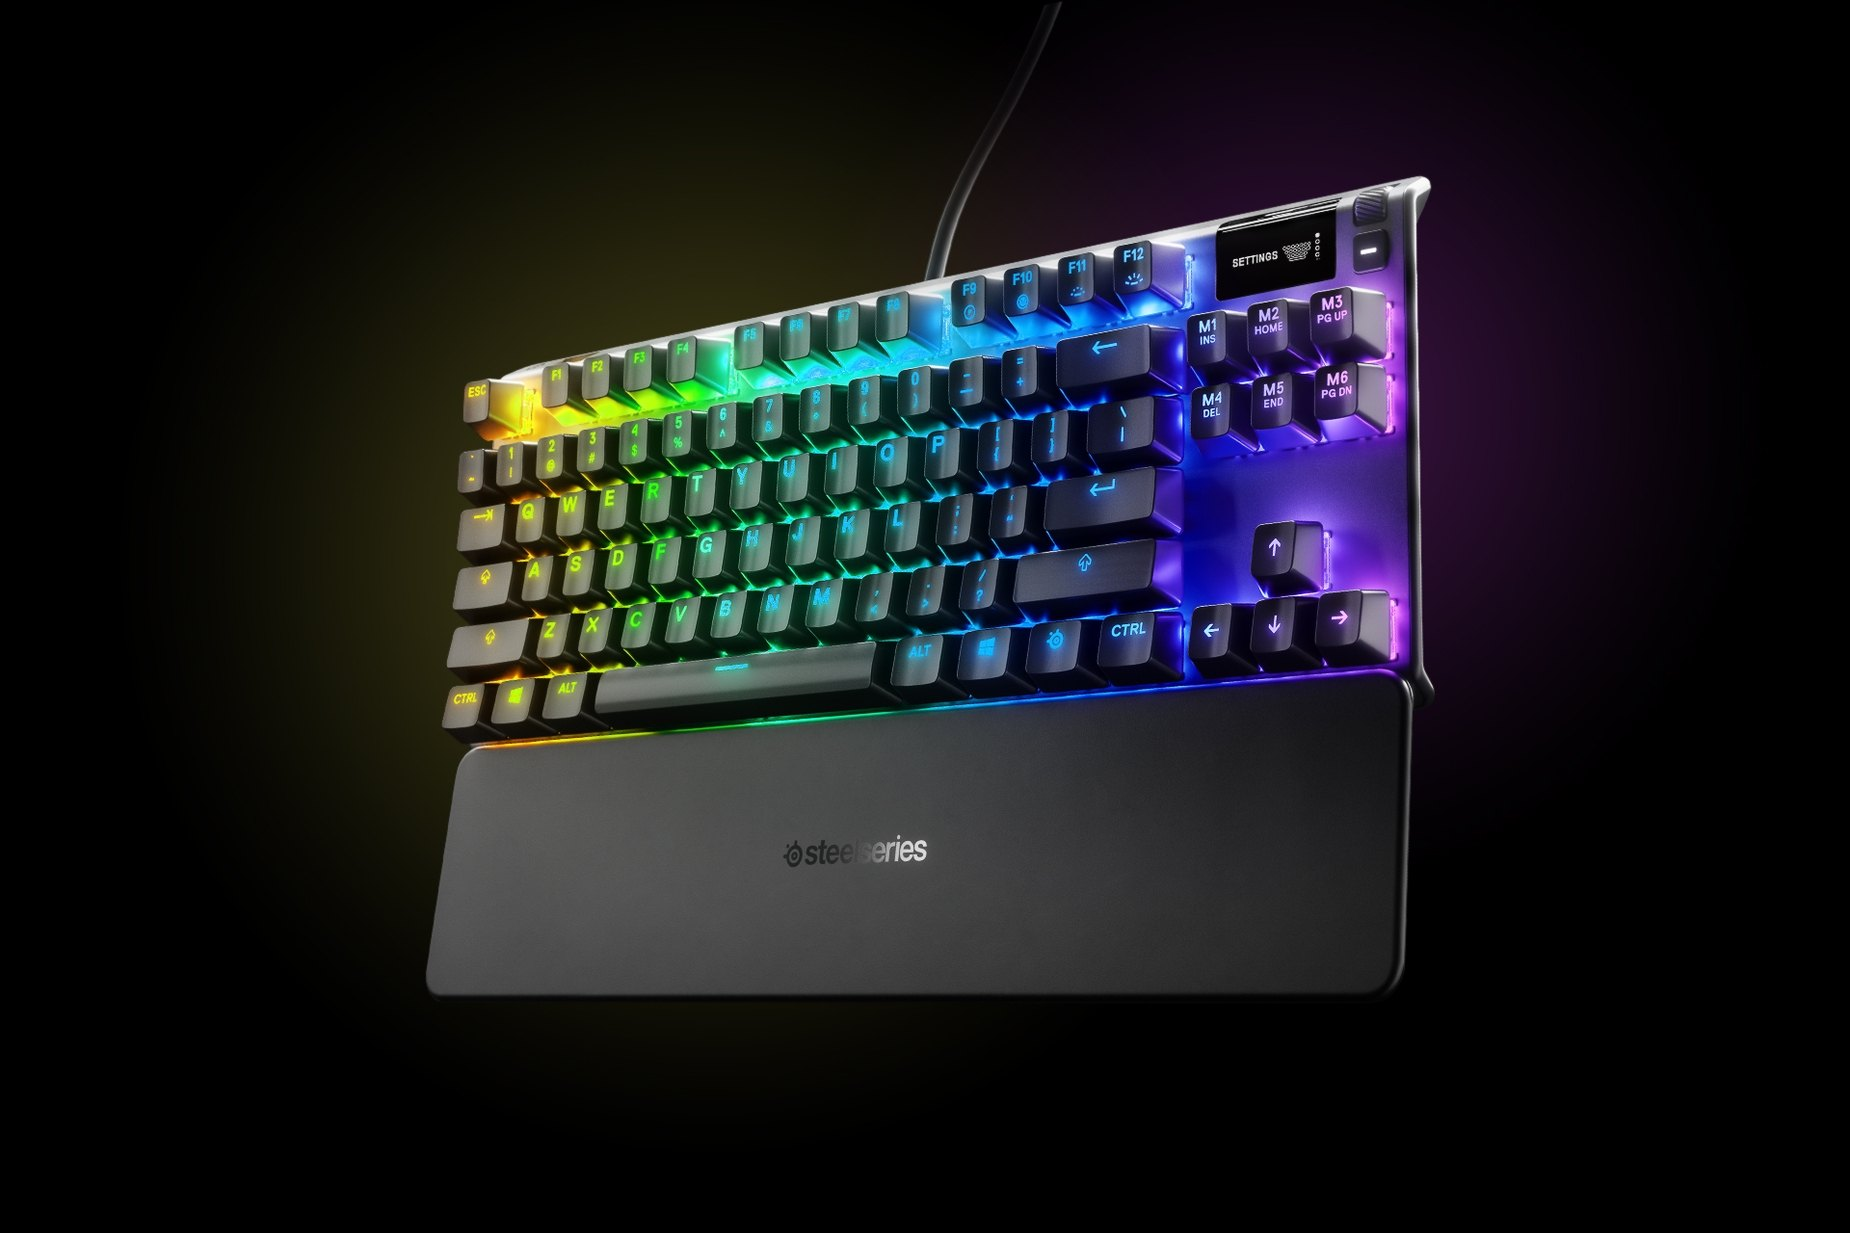 英国英语-Apex 7 TKL (Brown Switch) gaming keyboard with the illumination lit up on dark background, also shows the OLED screen and controls used to change settings and adjust audio